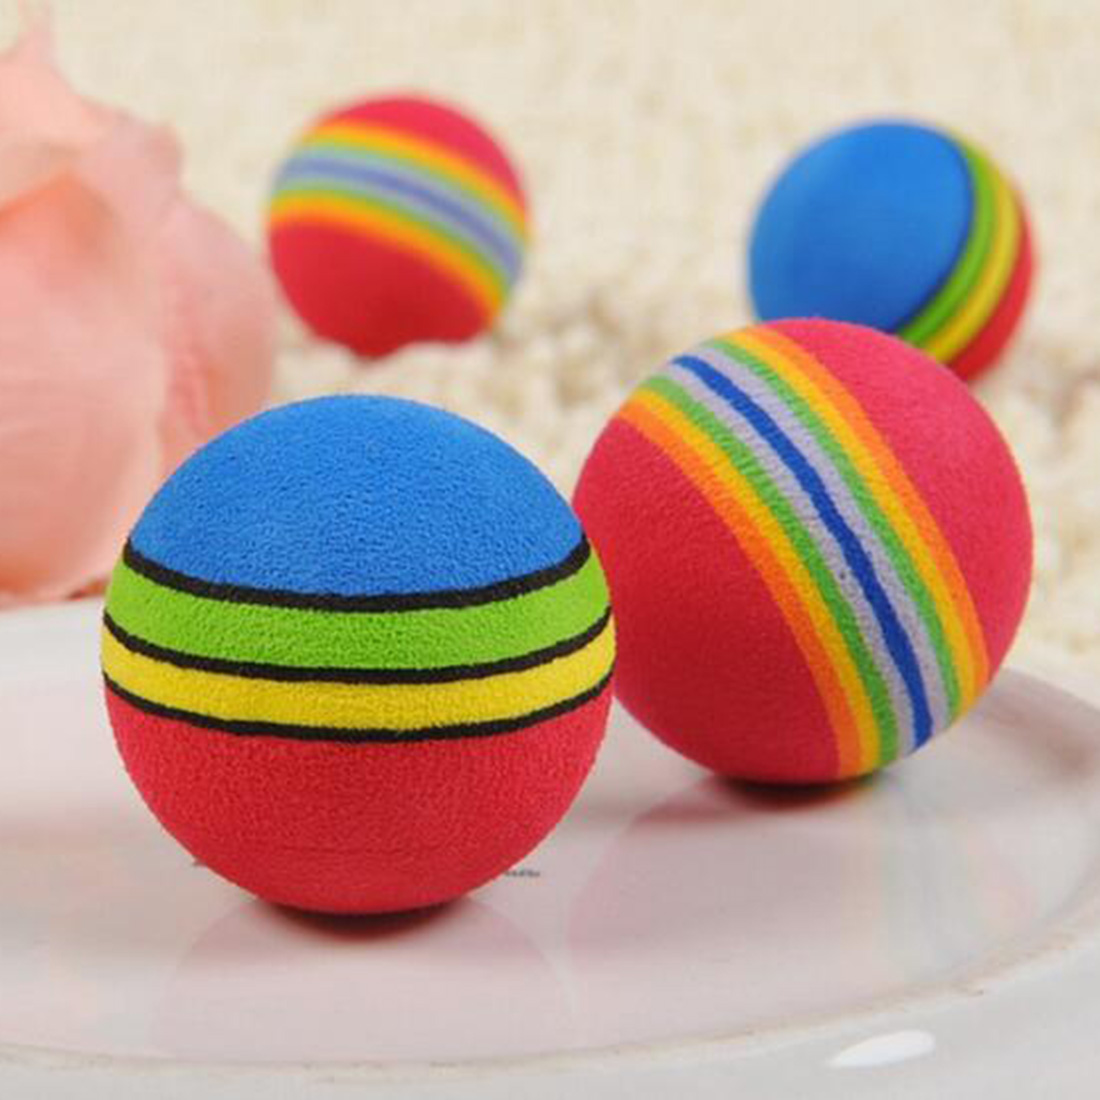 Little Ball Toys : ᗐinteresting pcs super cute Ξ rainbow toy ball